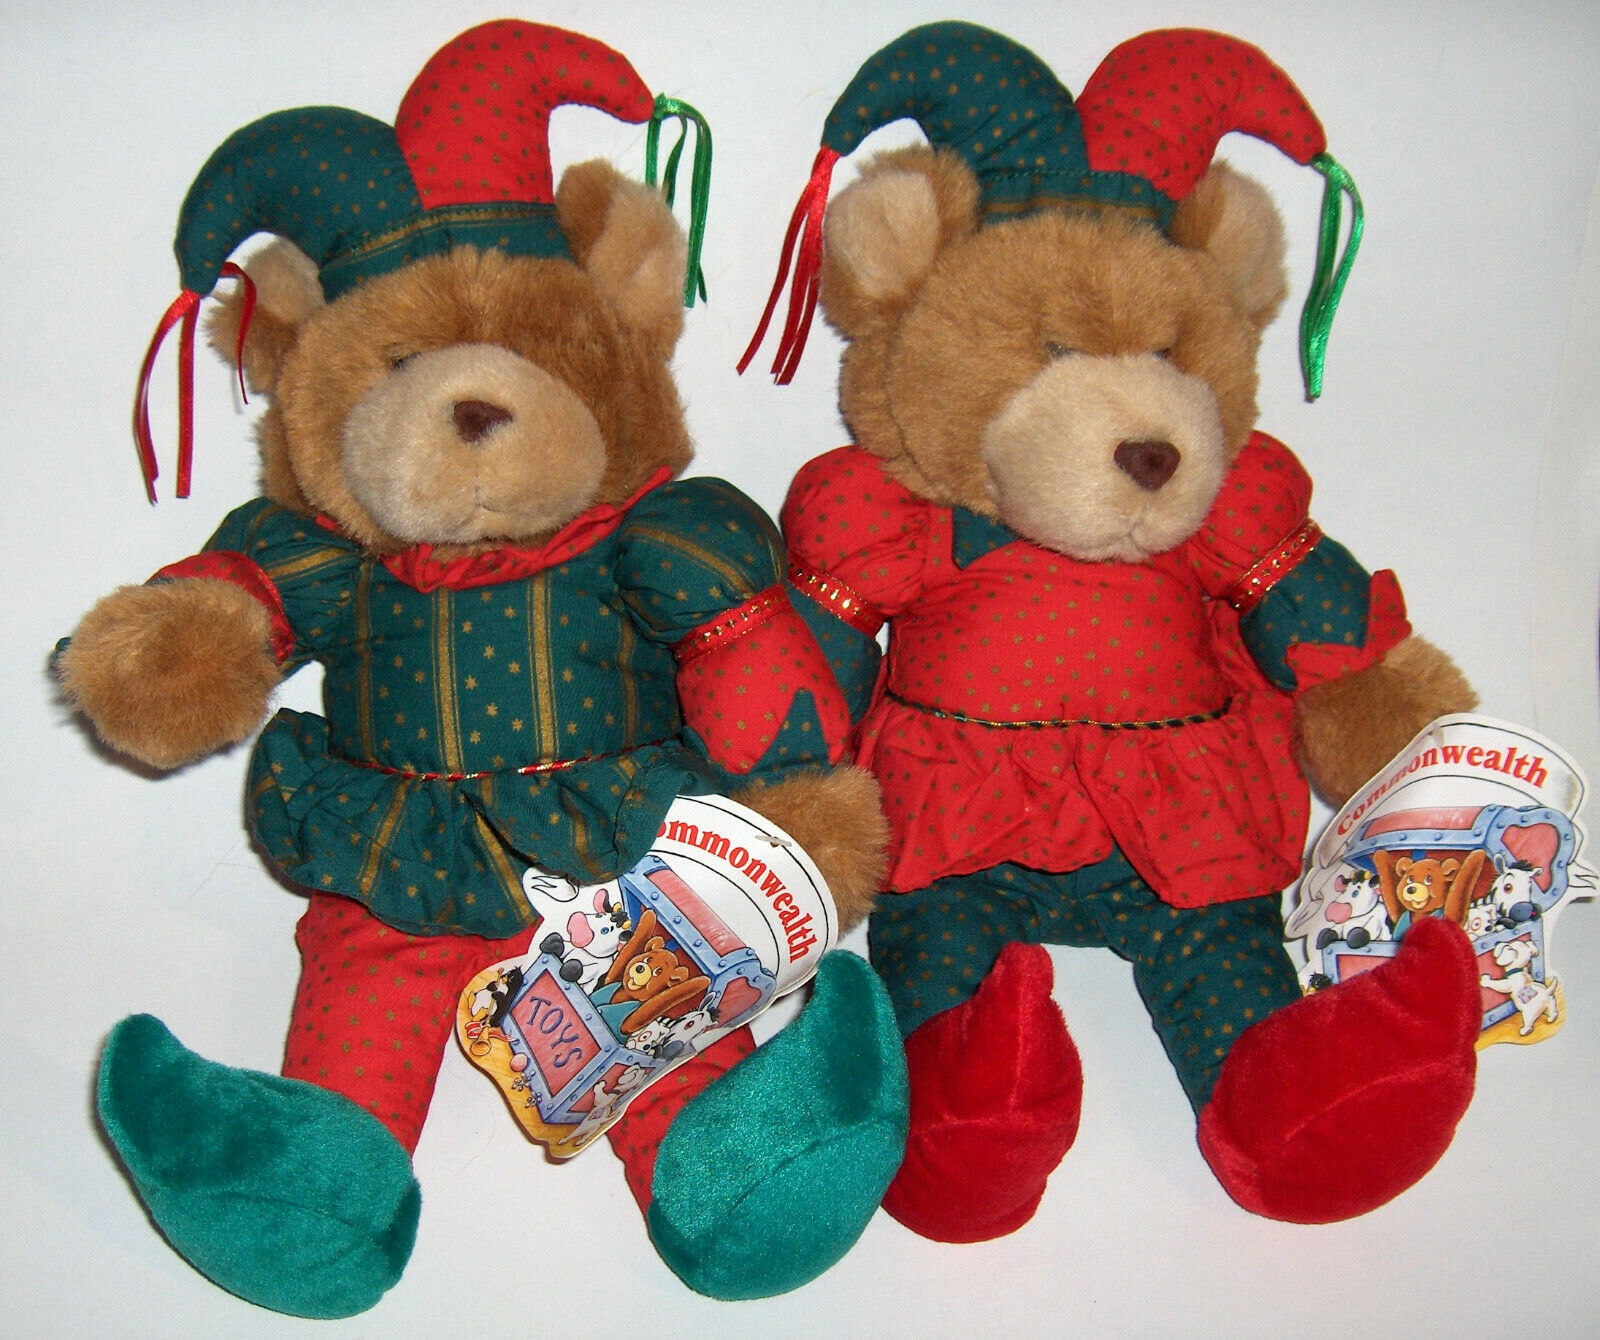 Primary image for VINTAGE COMMONWEALTH BROWN TEDDY BEARS CHRISTMAS STUFFED ANIMAL PLUSH TOY